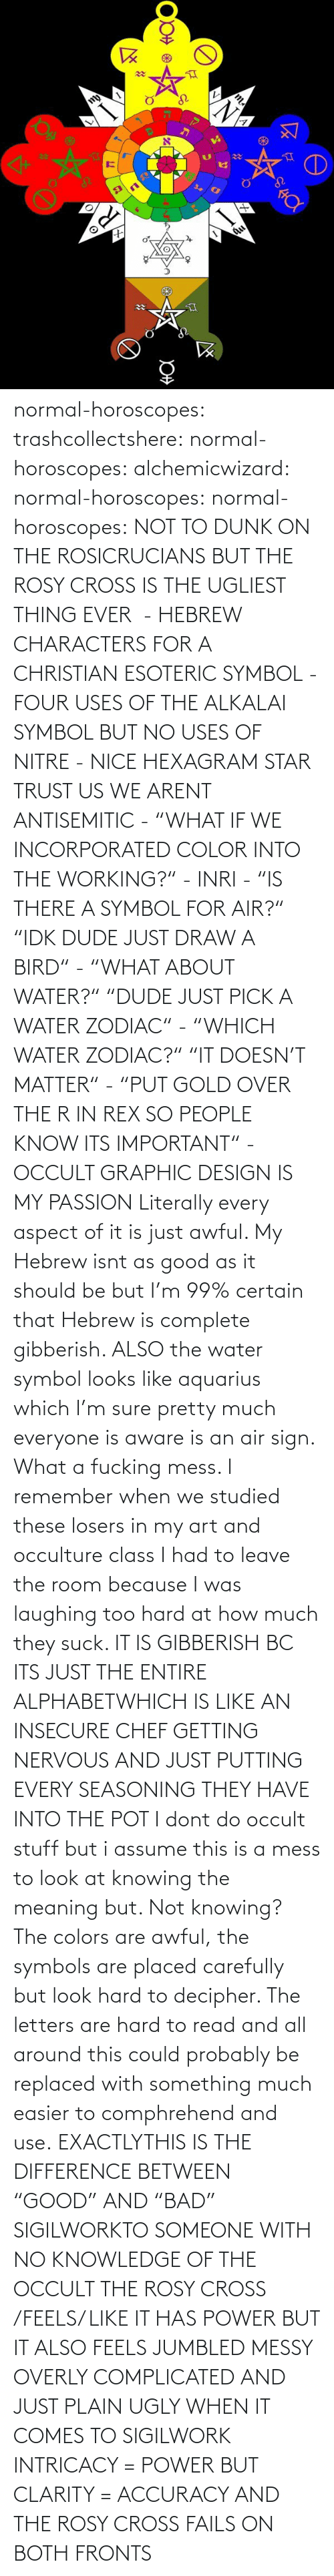 "Aware: normal-horoscopes:  trashcollectshere: normal-horoscopes:   alchemicwizard:  normal-horoscopes:  normal-horoscopes: NOT TO DUNK ON THE ROSICRUCIANS BUT THE ROSY CROSS IS THE UGLIEST THING EVER  - HEBREW CHARACTERS FOR A CHRISTIAN ESOTERIC SYMBOL - FOUR USES OF THE ALKALAI SYMBOL BUT NO USES OF NITRE - NICE HEXAGRAM STAR TRUST US WE ARENT ANTISEMITIC - ""WHAT IF WE INCORPORATED COLOR INTO THE WORKING?"" - INRI - ""IS THERE A SYMBOL FOR AIR?"" ""IDK DUDE JUST DRAW A BIRD"" - ""WHAT ABOUT WATER?"" ""DUDE JUST PICK A WATER ZODIAC"" - ""WHICH WATER ZODIAC?"" ""IT DOESN'T MATTER"" - ""PUT GOLD OVER THE R IN REX SO PEOPLE KNOW ITS IMPORTANT"" - OCCULT GRAPHIC DESIGN IS MY PASSION  Literally every aspect of it is just awful. My Hebrew isnt as good as it should be but I'm 99% certain that Hebrew is complete gibberish.  ALSO the water symbol looks like aquarius which I'm sure pretty much everyone is aware is an air sign. What a fucking mess.  I remember when we studied these losers in my art and occulture class I had to leave the room because I was laughing too hard at how much they suck.   IT IS GIBBERISH BC ITS JUST THE ENTIRE ALPHABETWHICH IS LIKE AN INSECURE CHEF GETTING NERVOUS AND JUST PUTTING EVERY SEASONING THEY HAVE INTO THE POT     I dont do occult stuff but i assume this is a mess to look at knowing the meaning but. Not knowing? The colors are awful, the symbols are placed carefully but look hard to decipher. The letters are hard to read and all around this could probably be replaced with something much easier to comphrehend and use.  EXACTLYTHIS IS THE DIFFERENCE BETWEEN ""GOOD"" AND ""BAD"" SIGILWORKTO SOMEONE WITH NO KNOWLEDGE OF THE OCCULT THE ROSY CROSS /FEELS/ LIKE IT HAS POWER BUT IT ALSO FEELS JUMBLED MESSY OVERLY COMPLICATED AND JUST PLAIN UGLY WHEN IT COMES TO SIGILWORK INTRICACY = POWER BUT CLARITY = ACCURACY AND THE ROSY CROSS FAILS ON BOTH FRONTS"